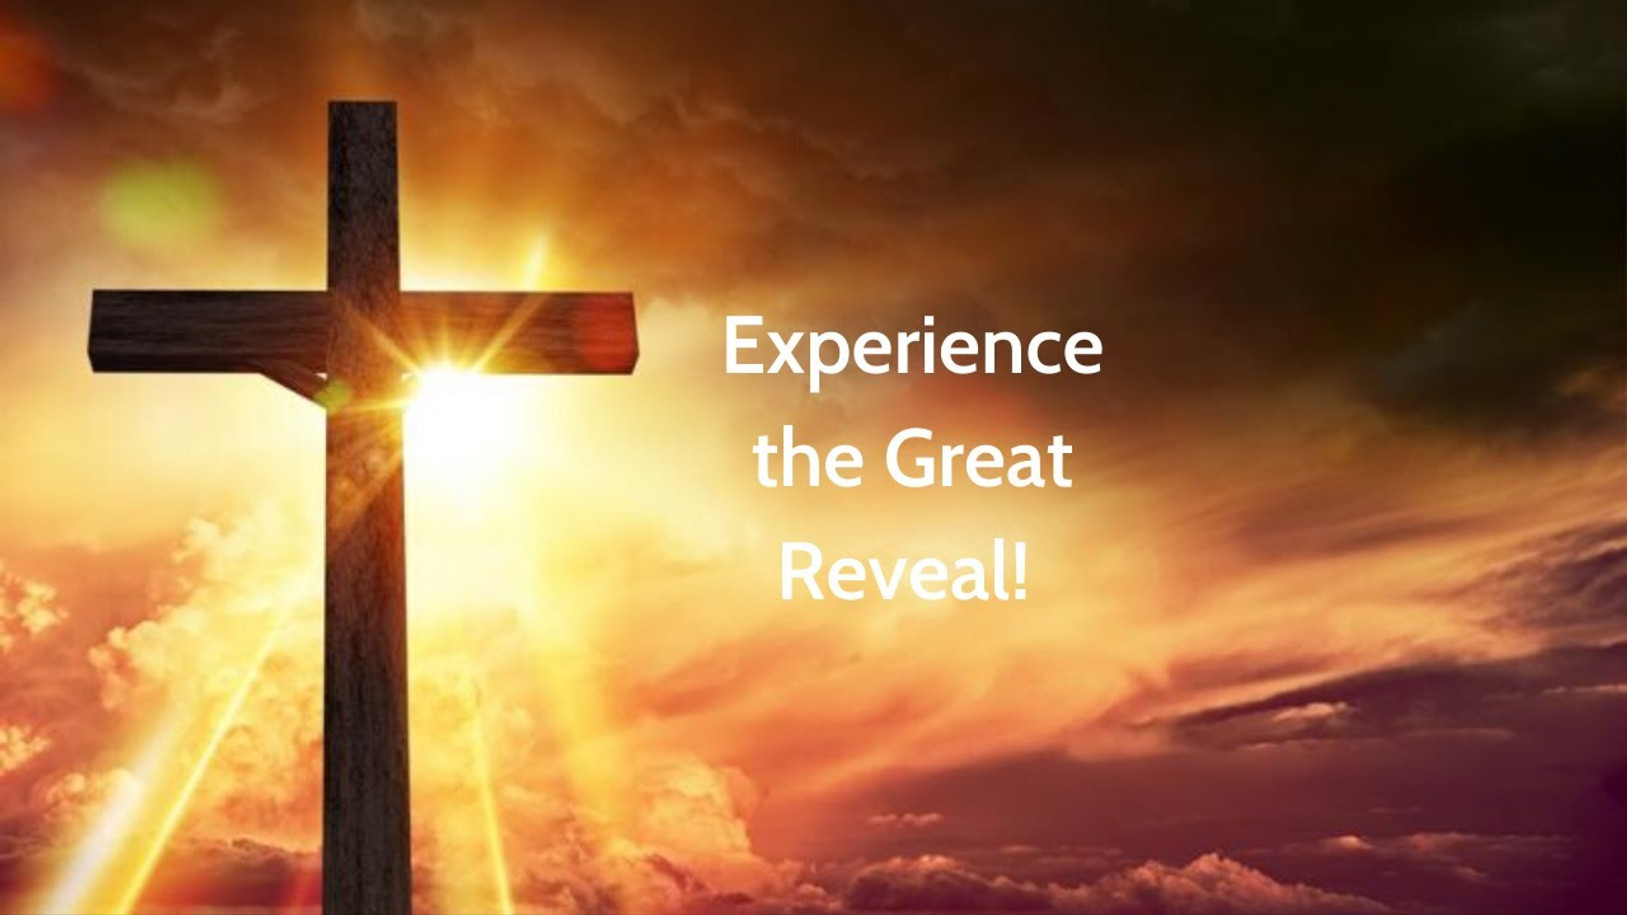 Experience the Great Reveal!